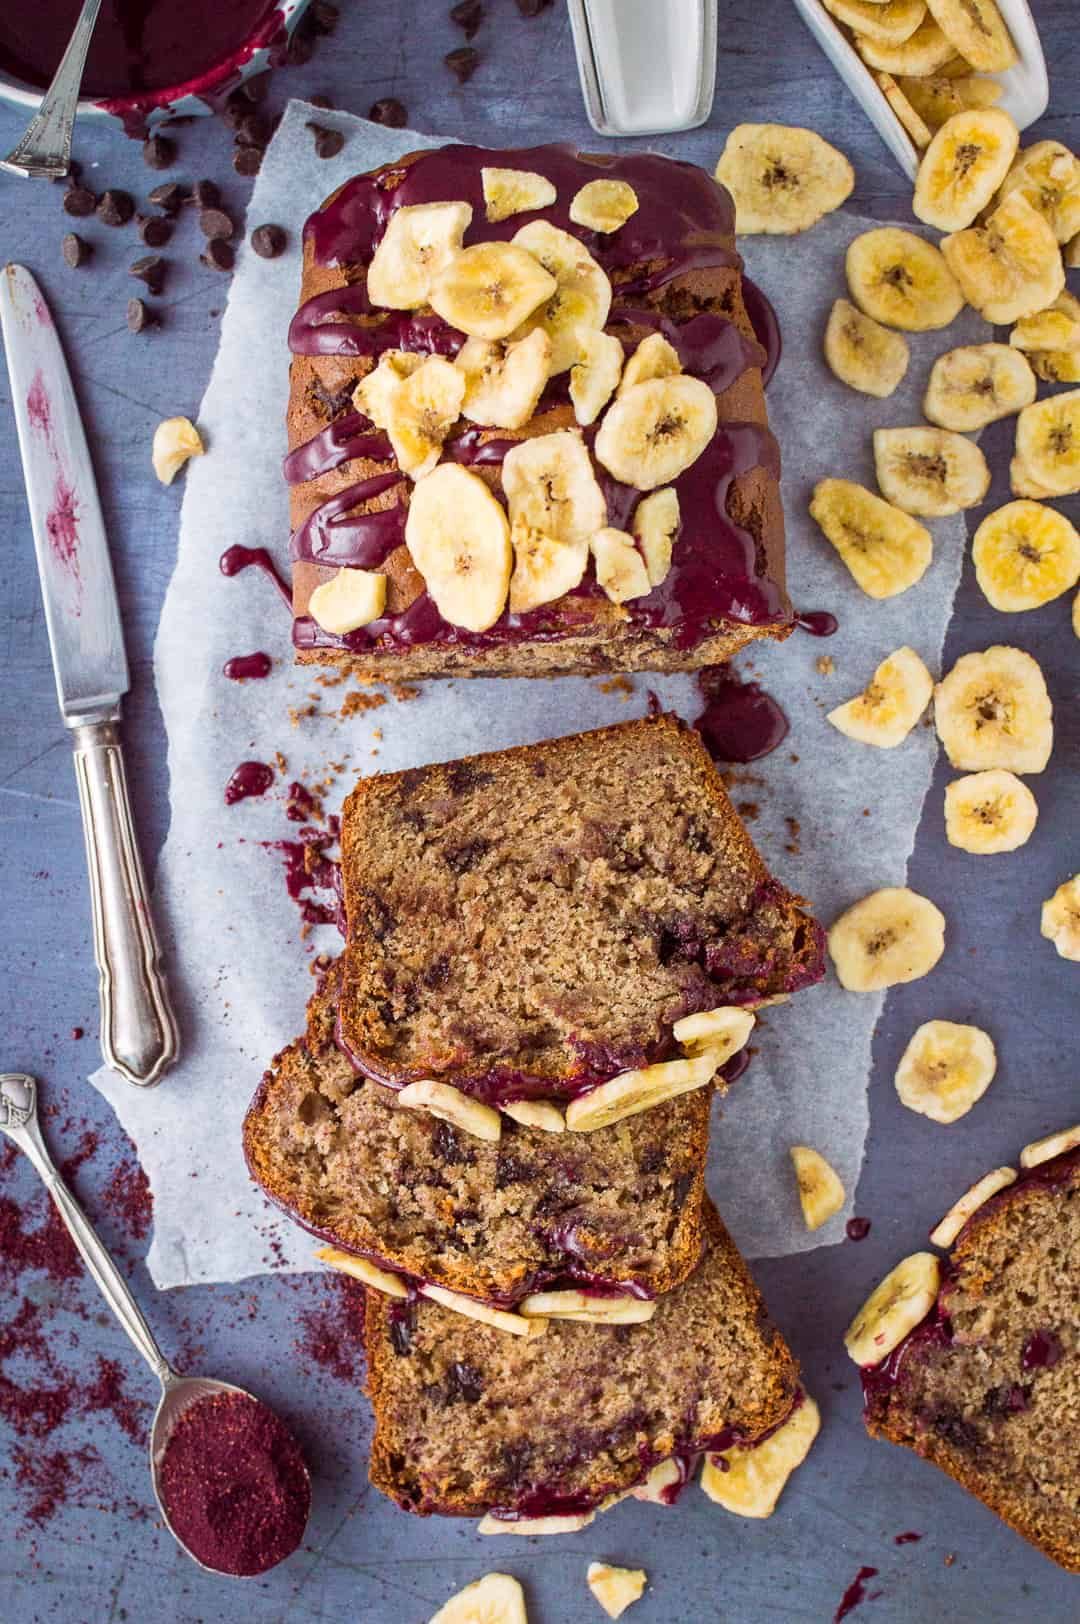 Vegan chocolate chip banana bread - a vegan version of everyone's favourite bake. Easy to make using storecupboard ingredients, packed with chocolate chips and topped with a blueberry glaze; this banana bread is seriously good!